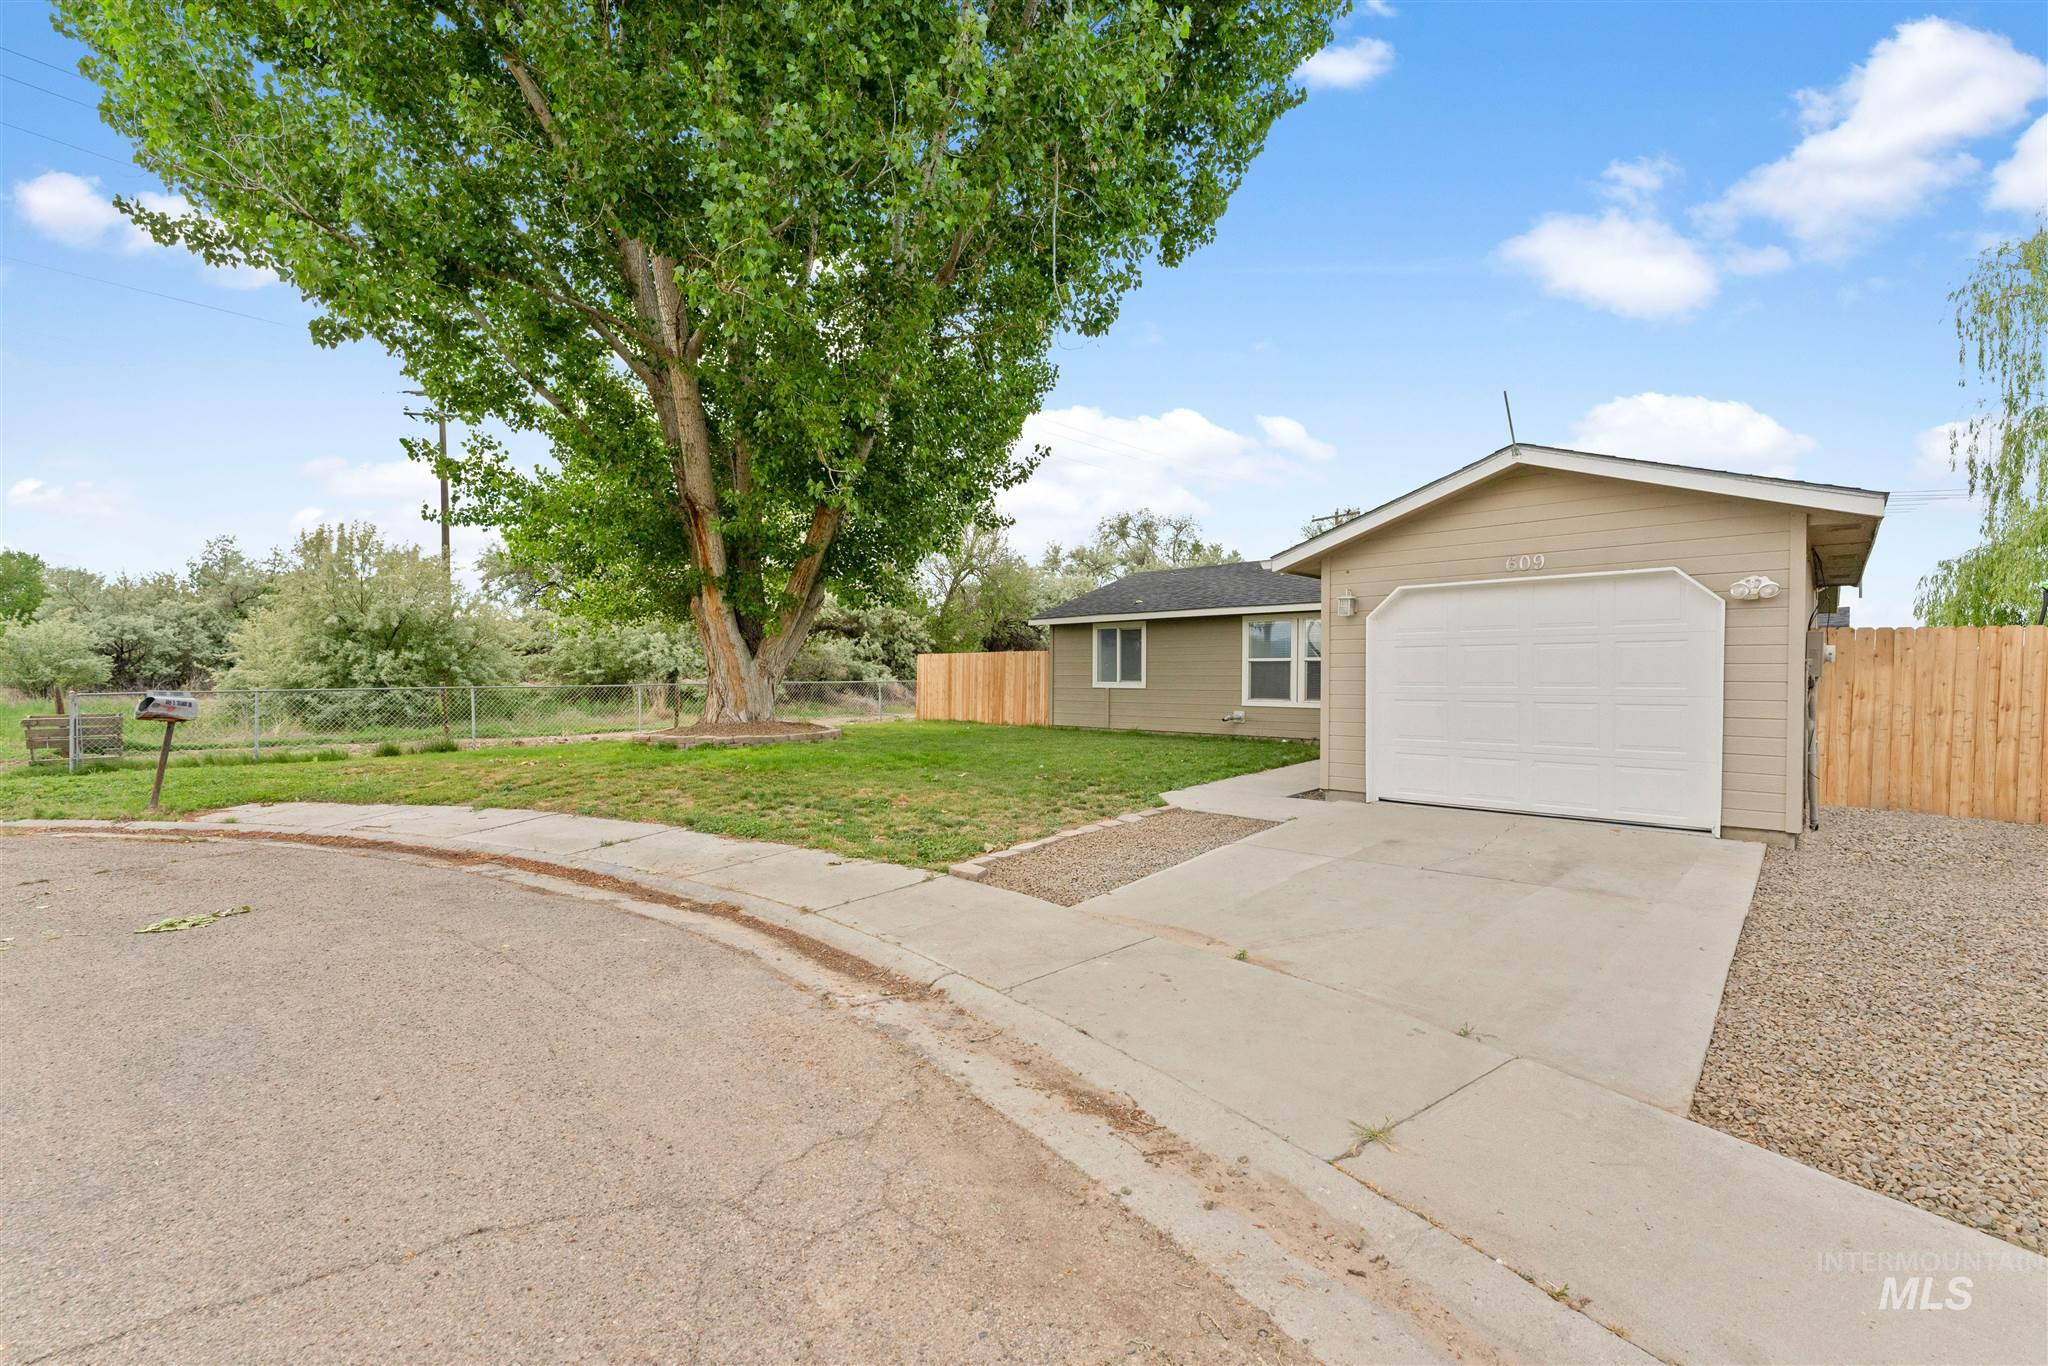 609 E Selway Property Photo - Homedale, ID real estate listing